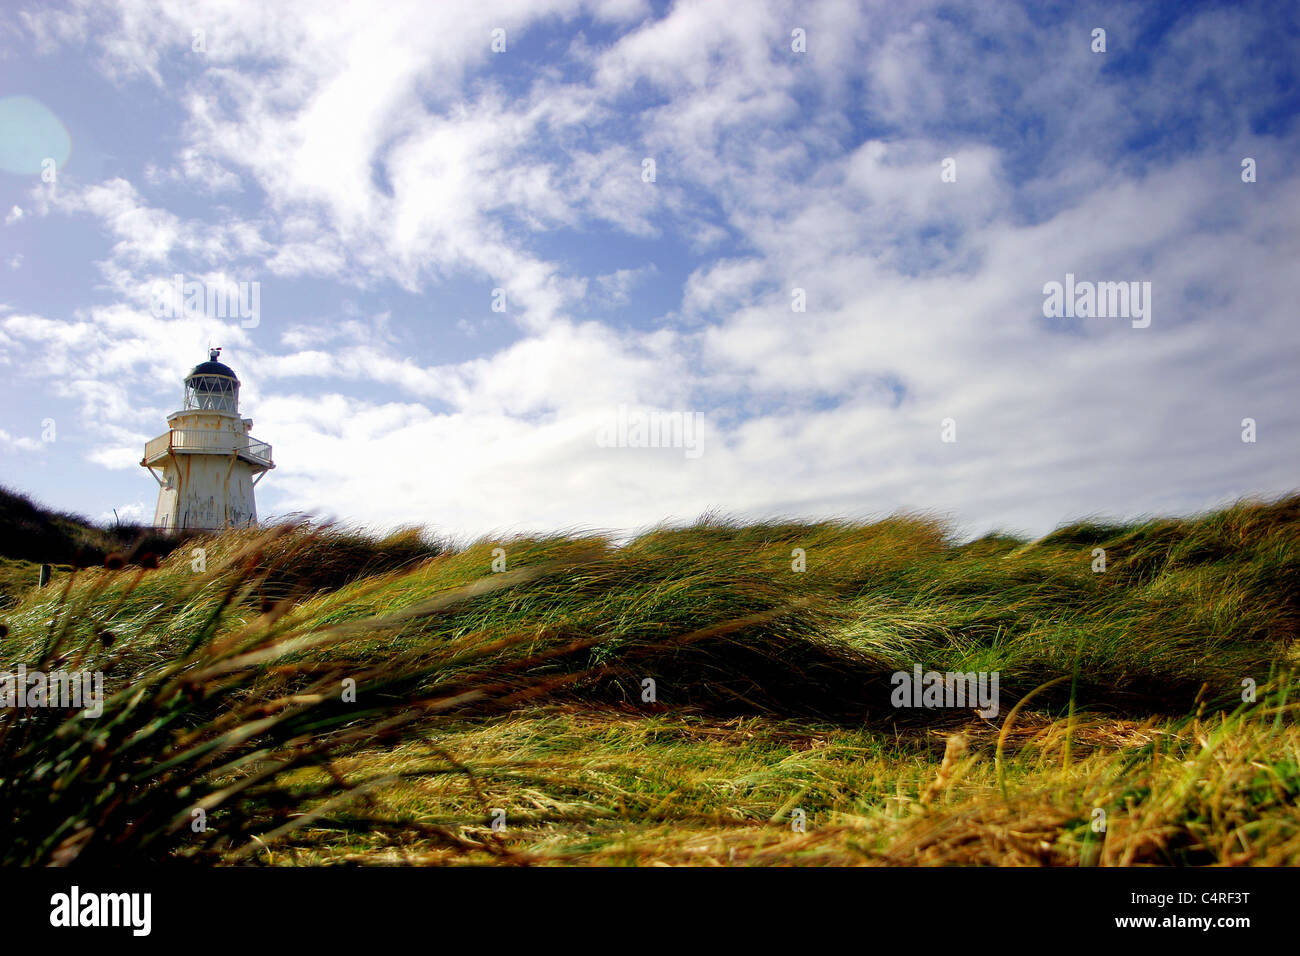 Lighthouse on a breezy day, The Catlins, South Island, New Zealand - Stock Image